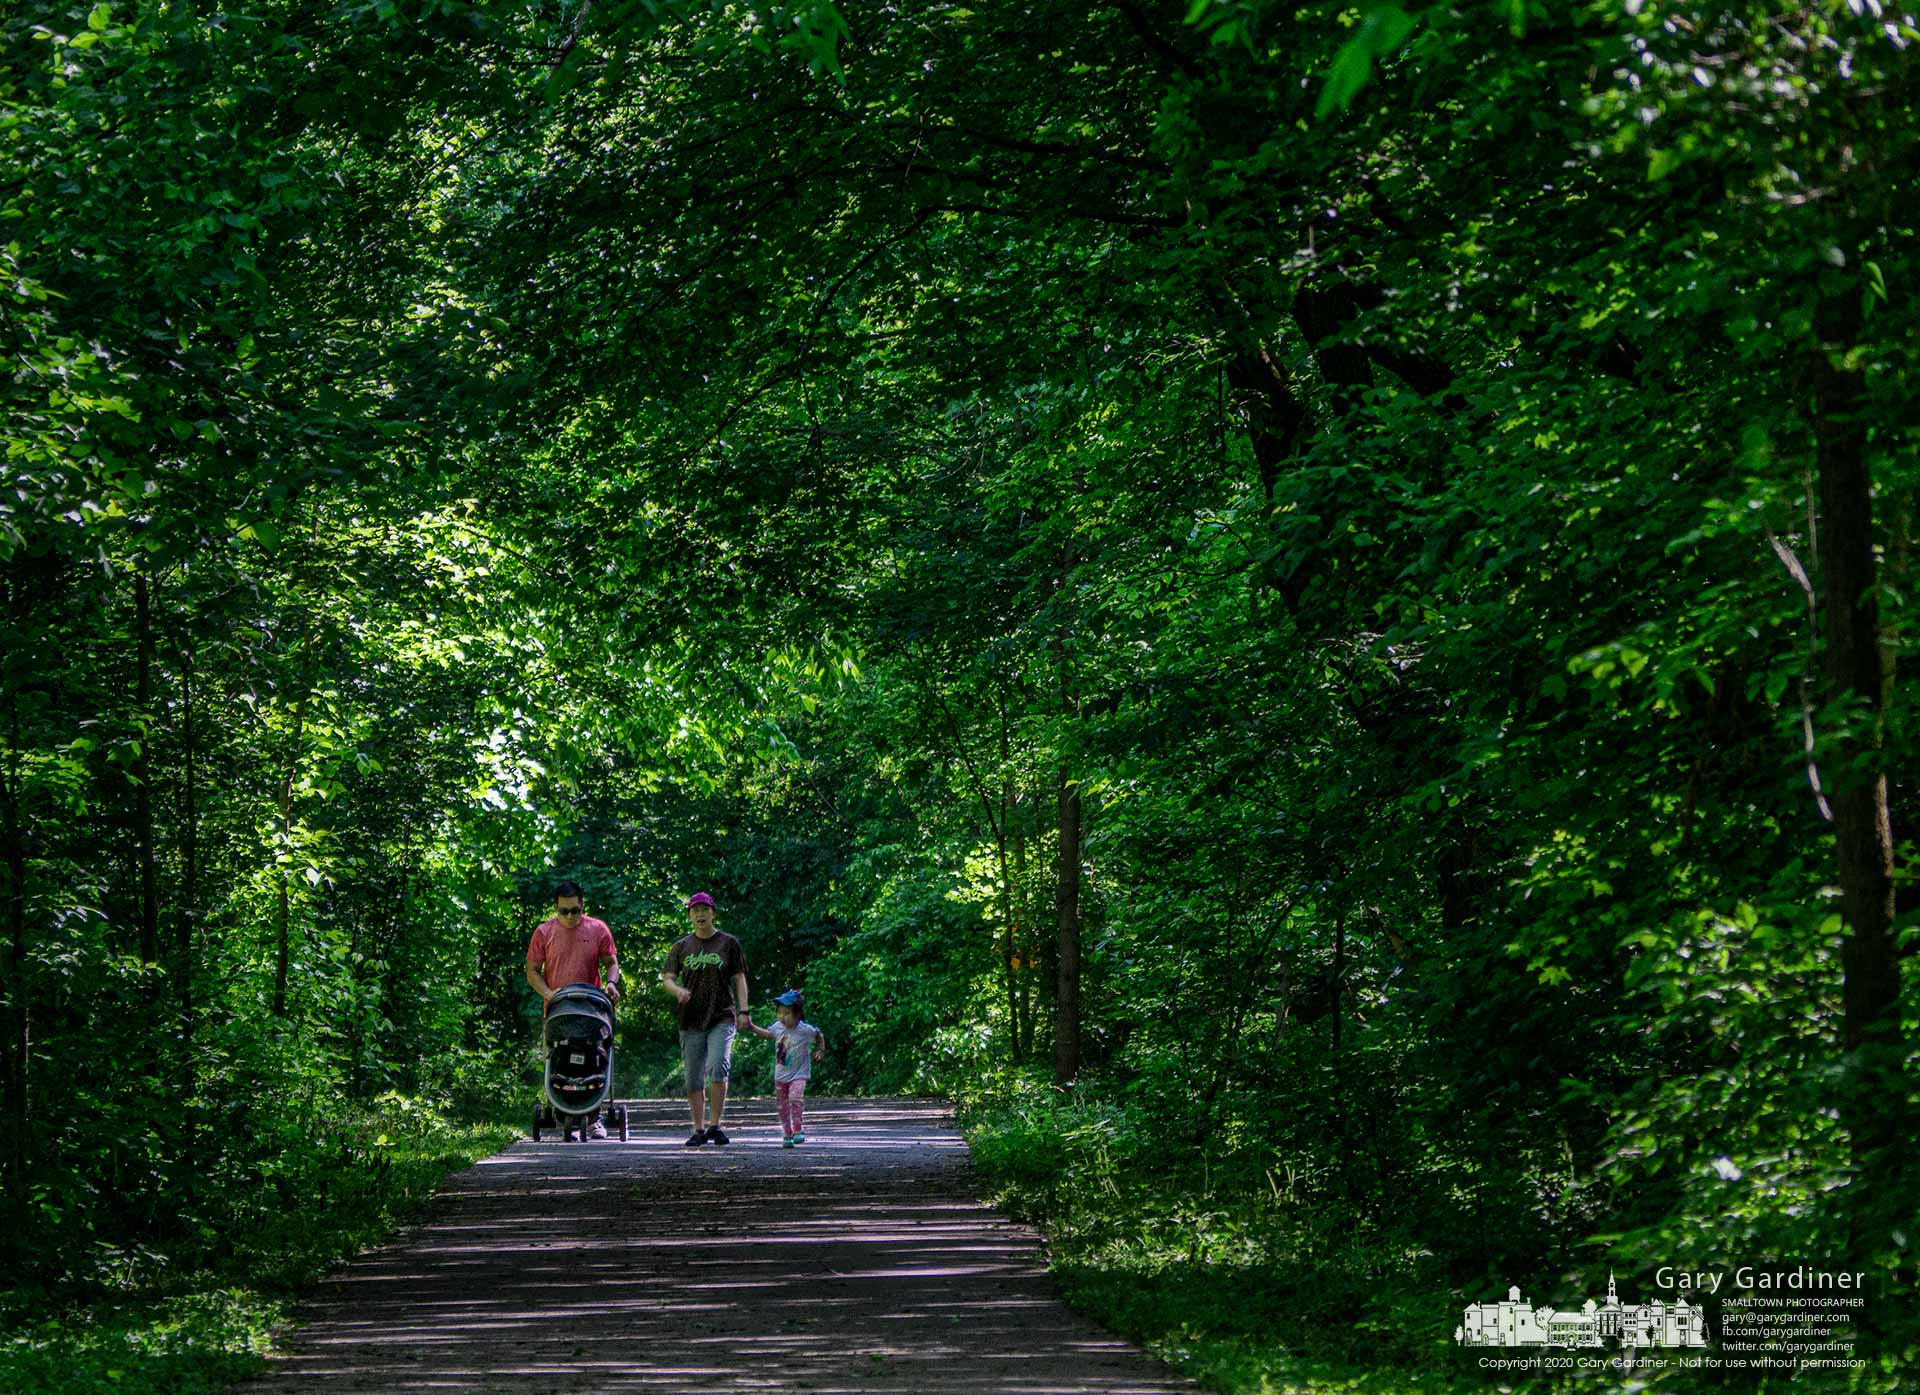 A family walks in the dappled sunlight cast along the tree-shrouded Hoover Scenic Walkway over Big Walnut Creek where it leads into Hoover Reservoir. My Final Photo for May 31, 2020.